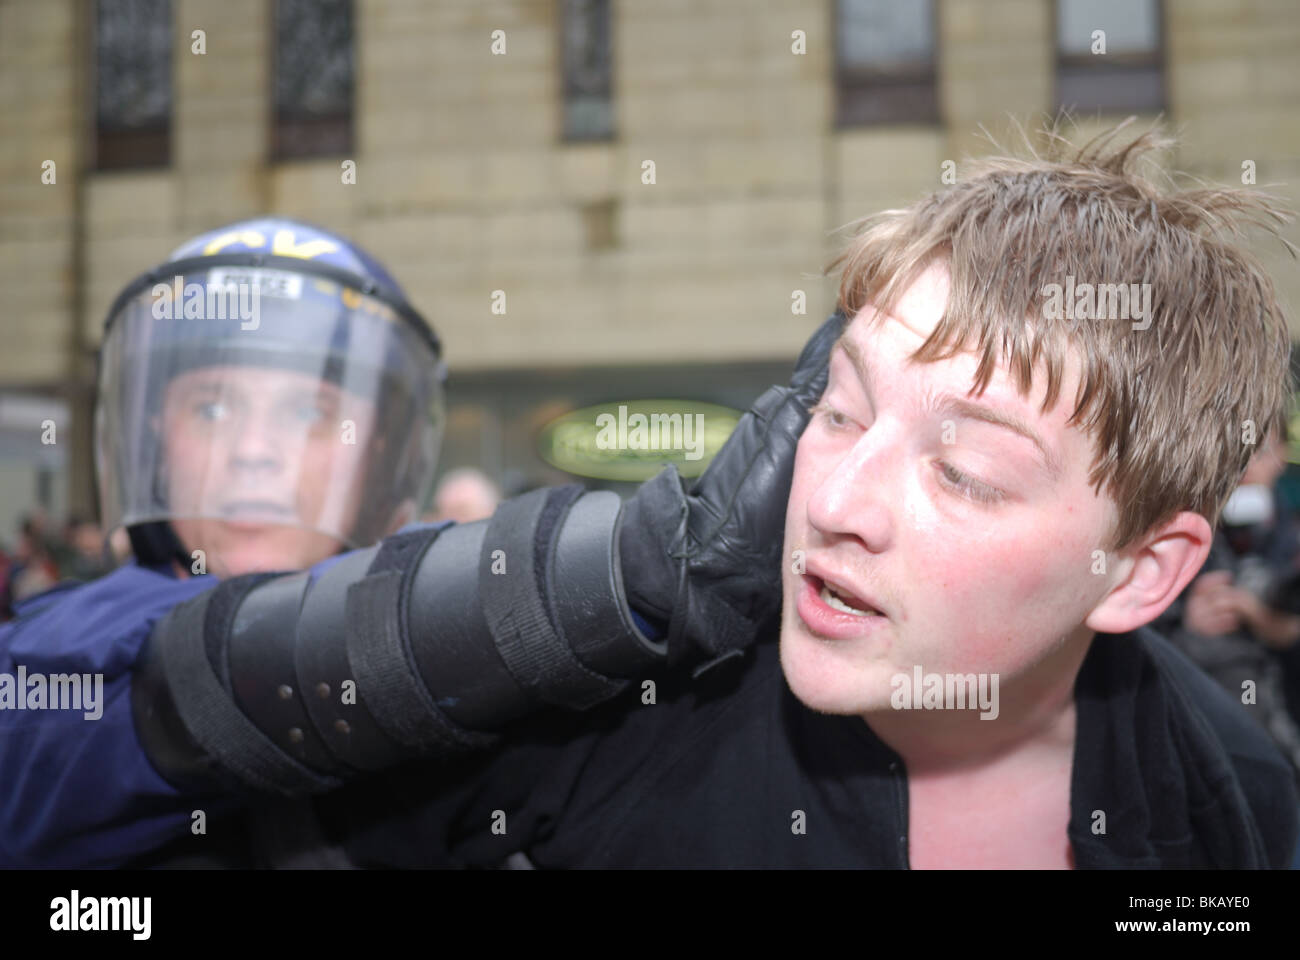 A Unite Against Fascism supporter is arrested by riot police at an English Defence League rally in Bolton. - Stock Image